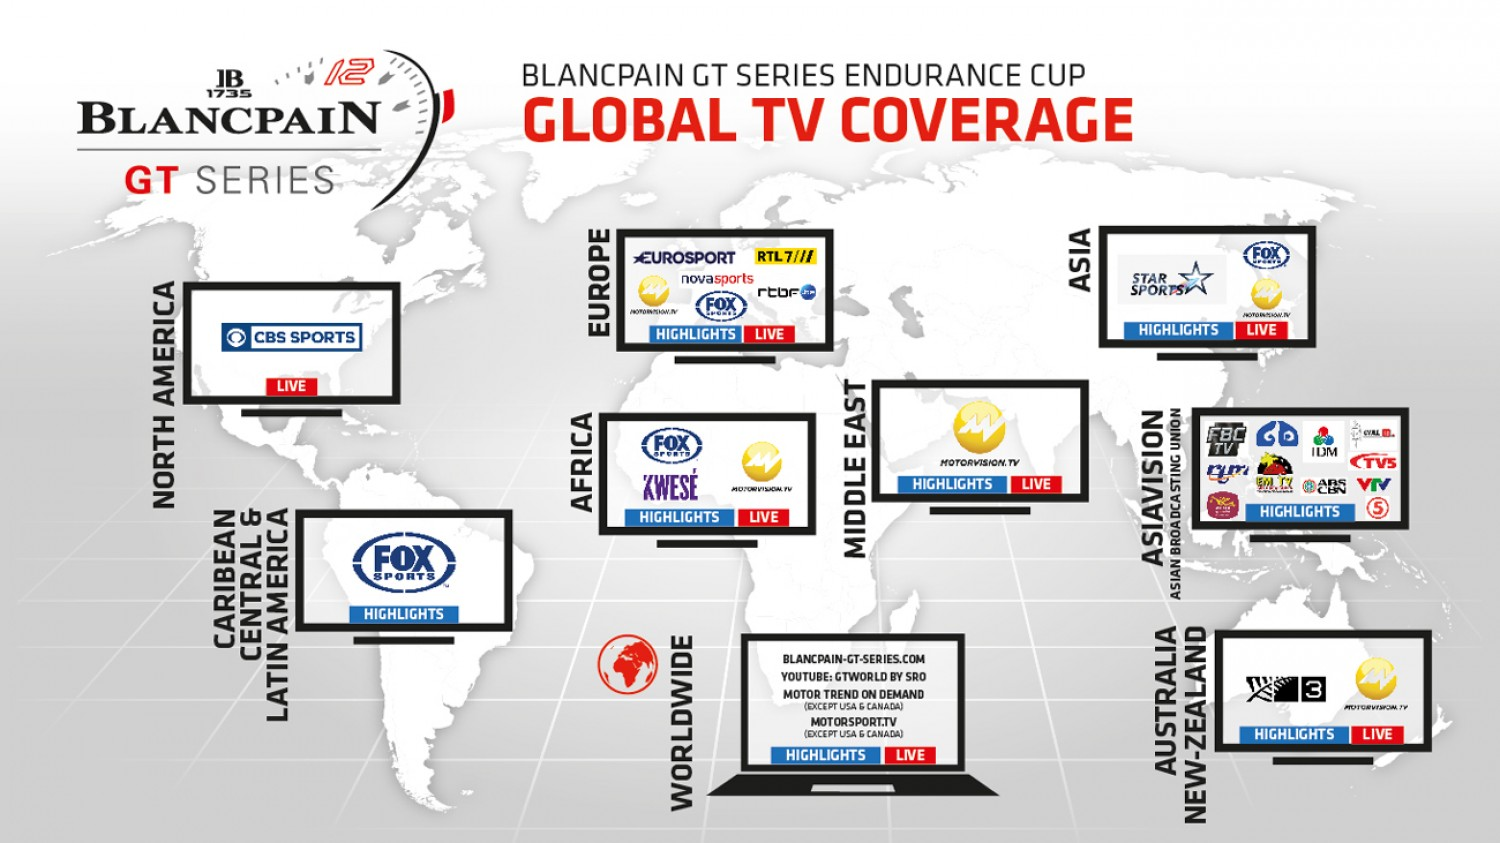 Extensive television and online coverage confirmed for 2019 Blancpain GT Series Endurance Cup